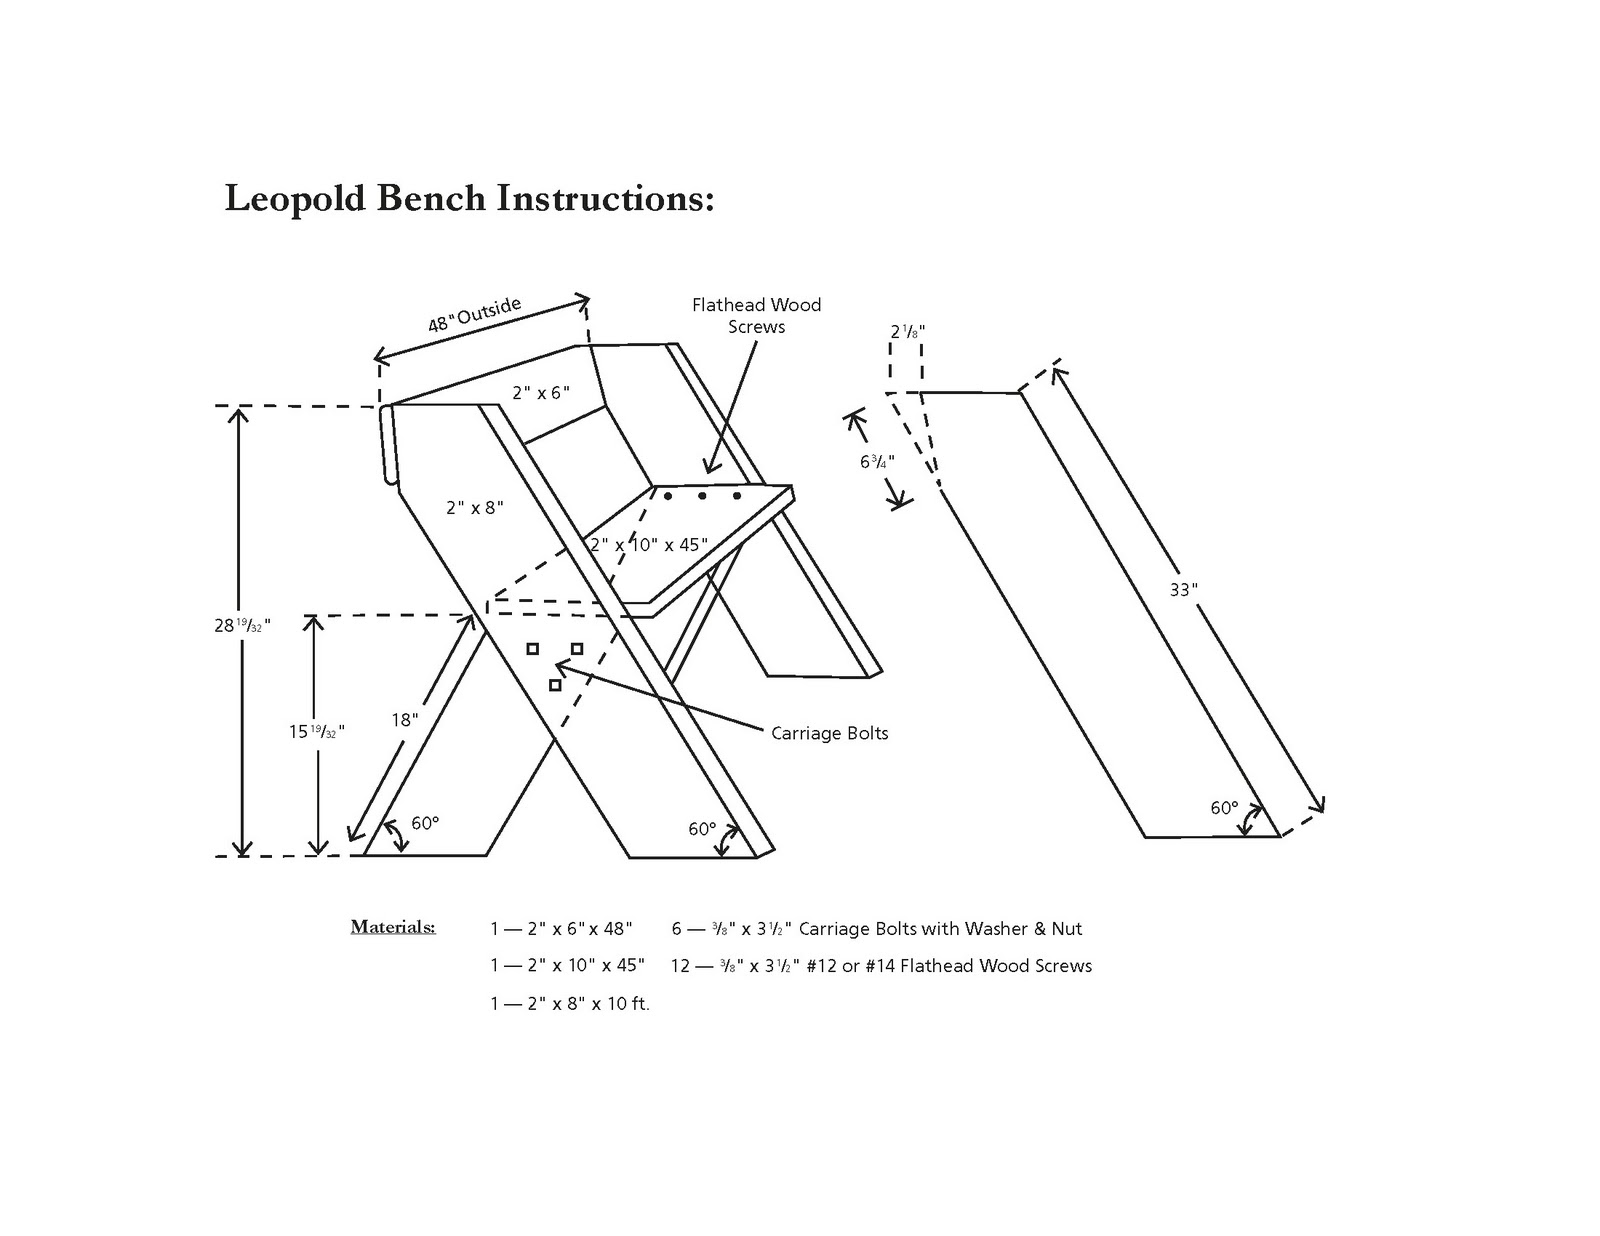 ... Family Time™: Four-Season of Activities: Aldo Leopold Bench Plans